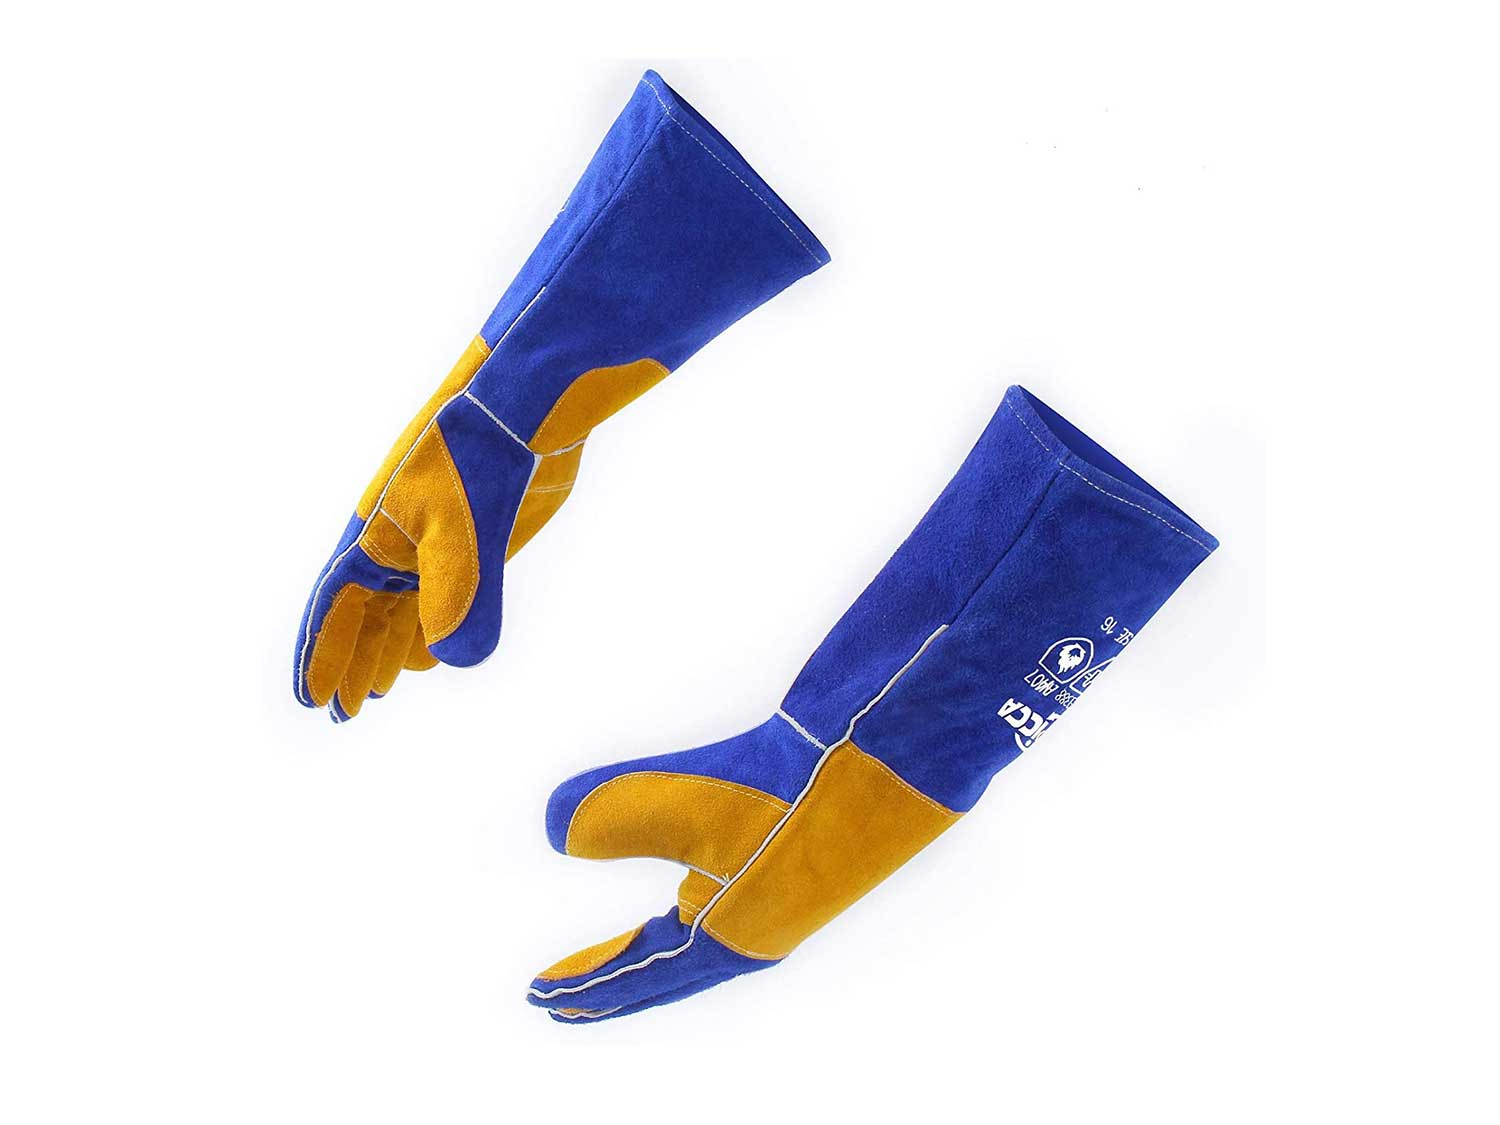 RAPICCA 16 Inches,932℉, Leather Forge/Mig/Stick Welding Gloves Heat/Fire Resistant, Mitts for Oven/Grill/Fireplace/Furnace/Stove/Pot Holder/Tig Welder/Mig/BBQ/Animal handling glove with 16 inches Extra Long Sleeve– Blue